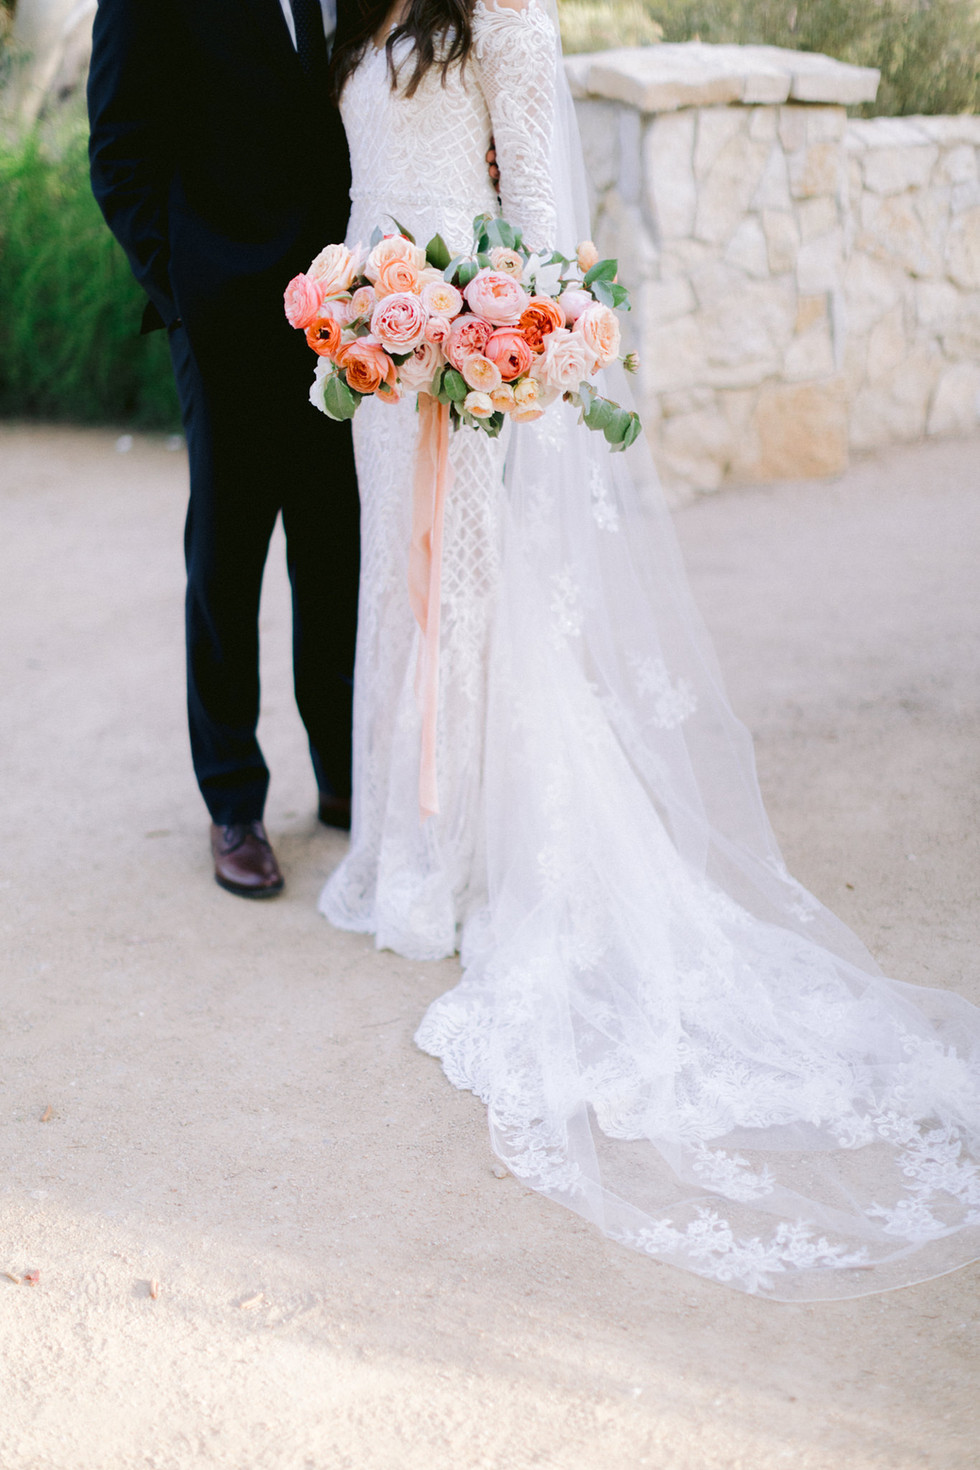 Coral, peach, and blush bridal bouquet. Photo: Susie and Will